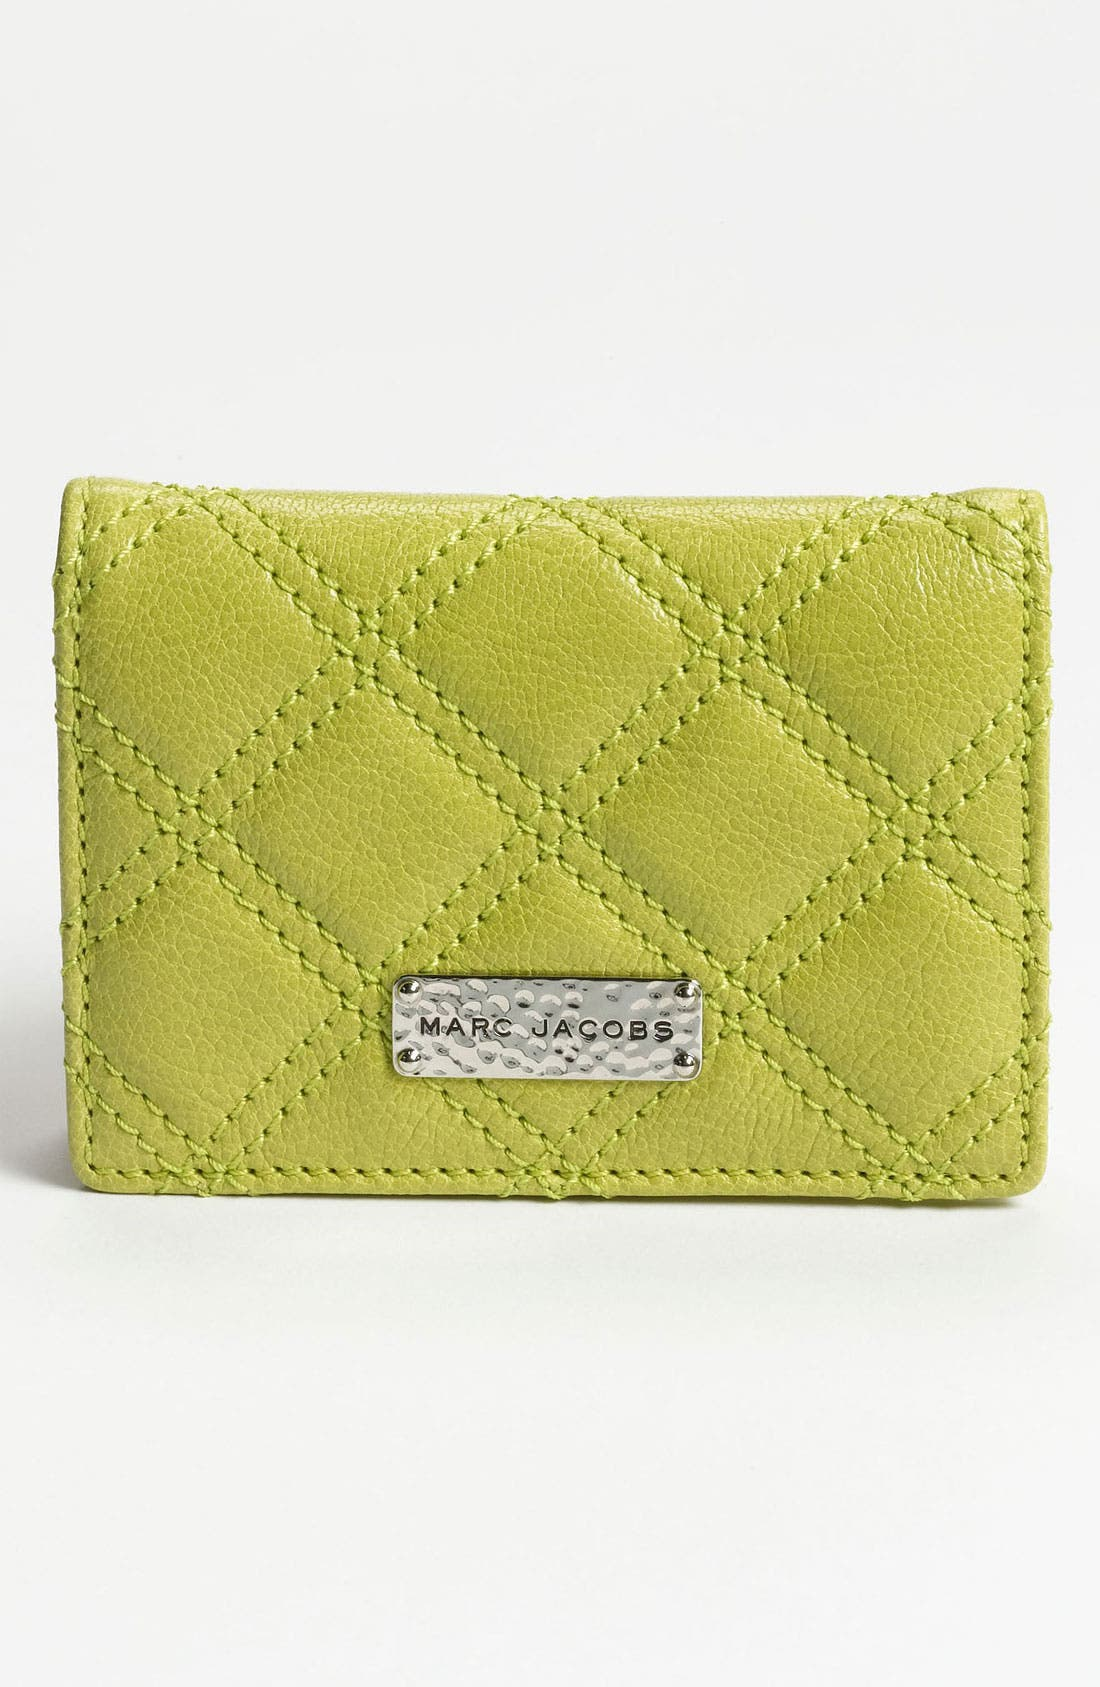 Alternate Image 1 Selected - MARC JACOBS 'Baroque' Card Holder